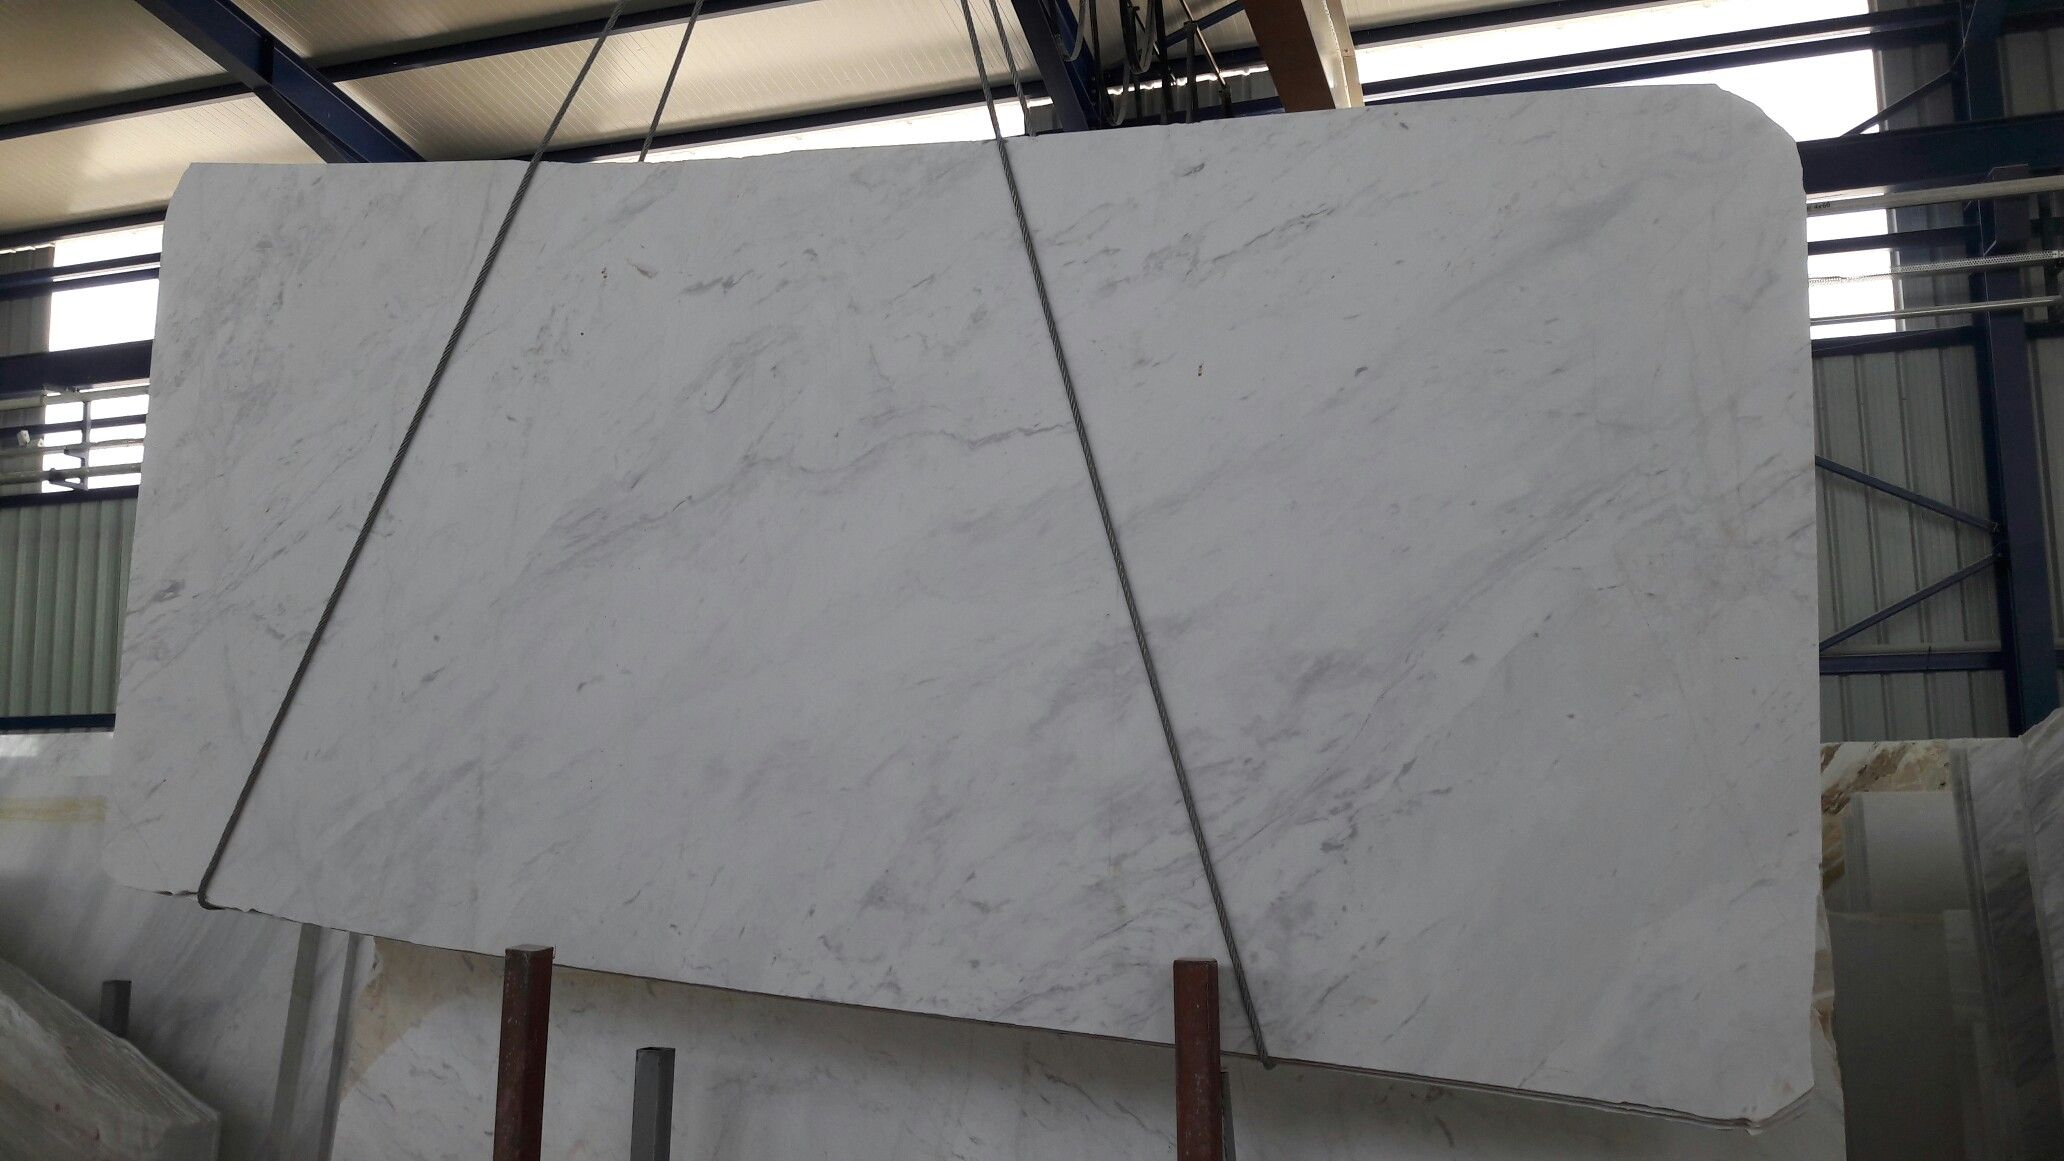 #crystalmar #company #factory #exporter #of #premium #quality #marble #project #cuttosize #interiordesign #architecture #sivec #marmo #thassos #thassosmarble #sivecwhitemarble #volakas #volakasmarble #volakas #white #greekmarble